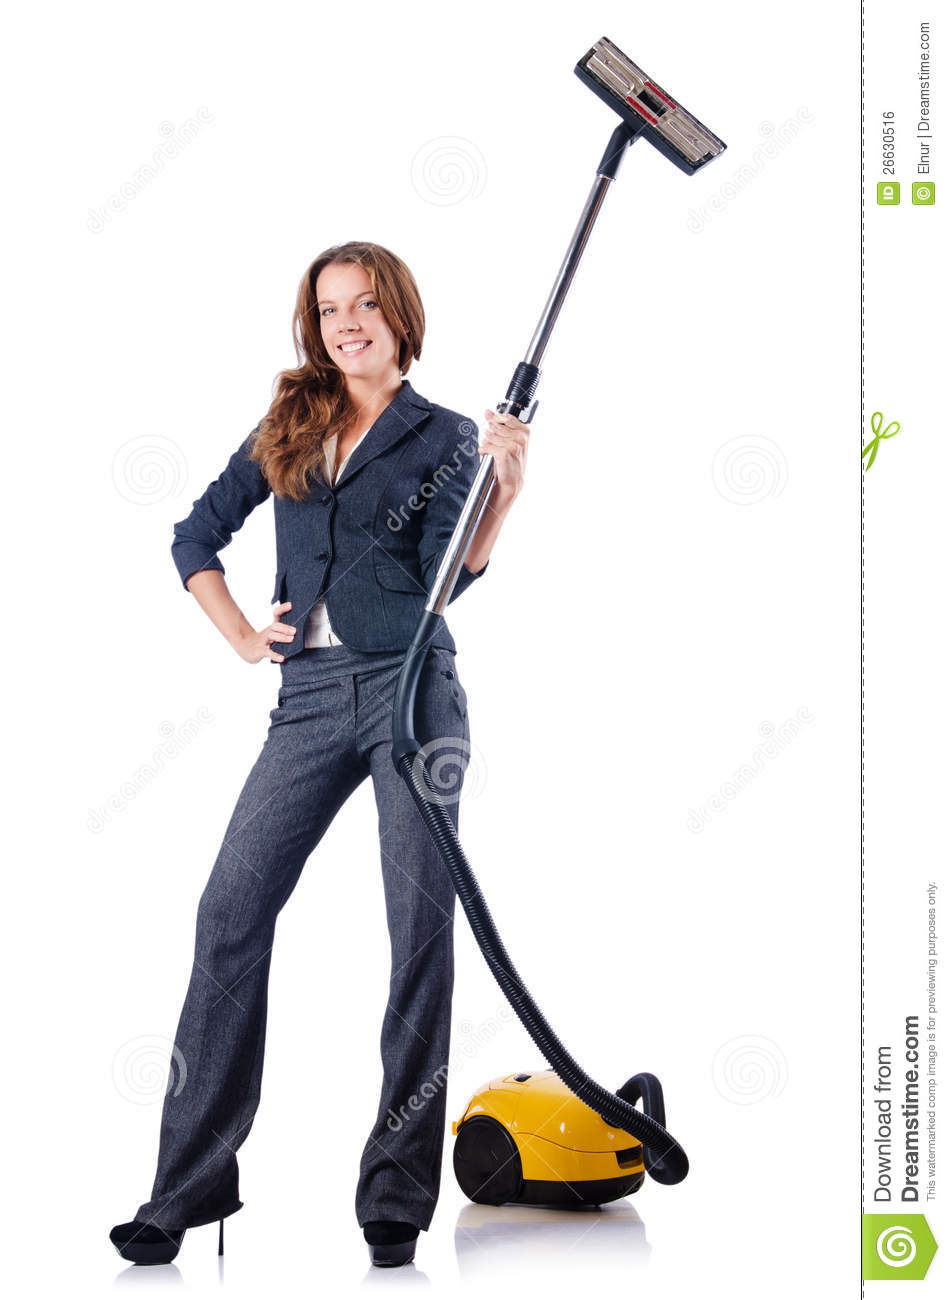 Woman Cleaning With Vacuum Cleaner Royalty Free Stock